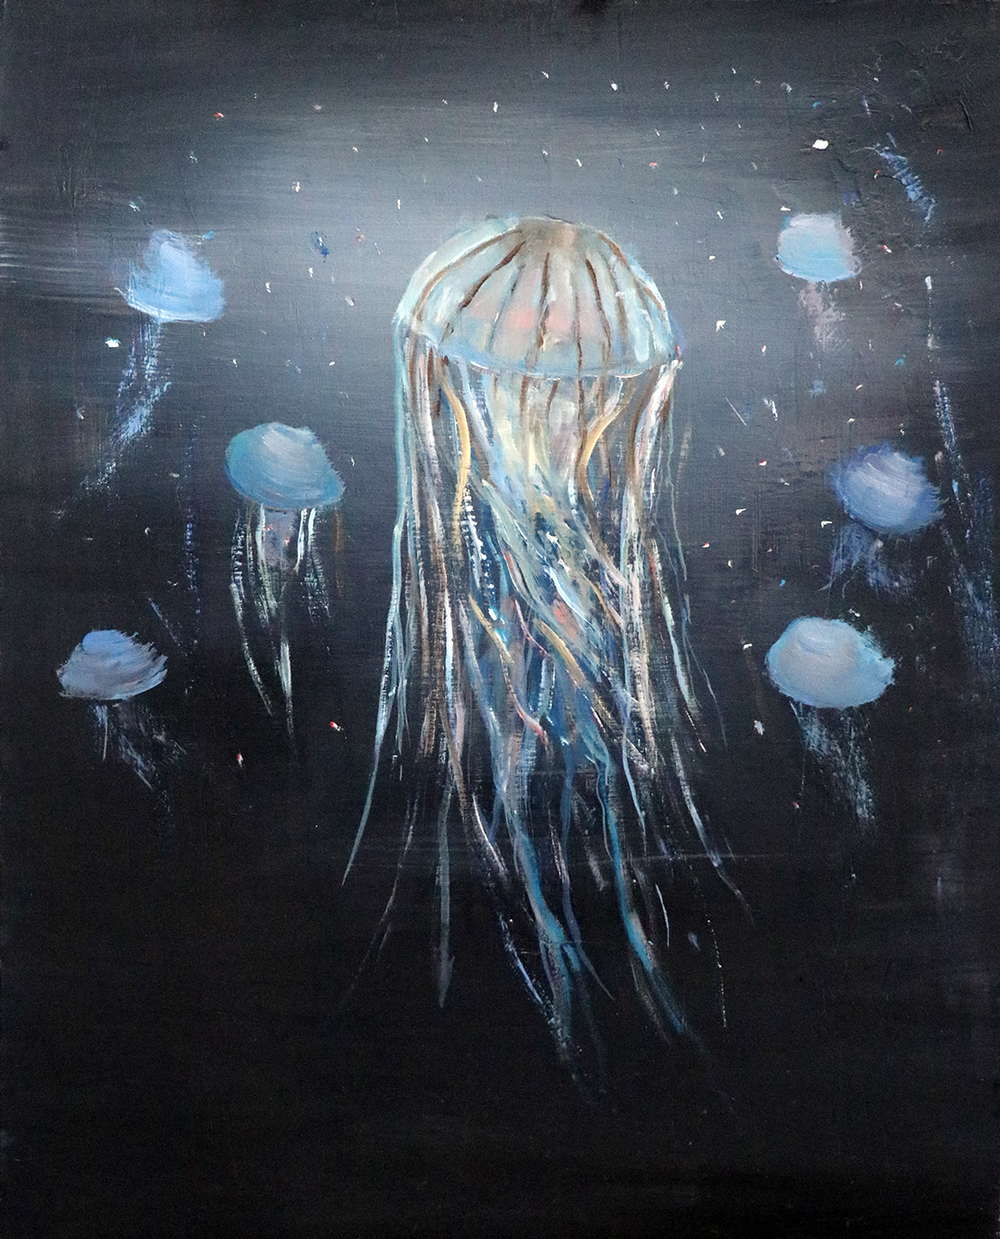 Kurayami22 - Rise of the Jellyfish